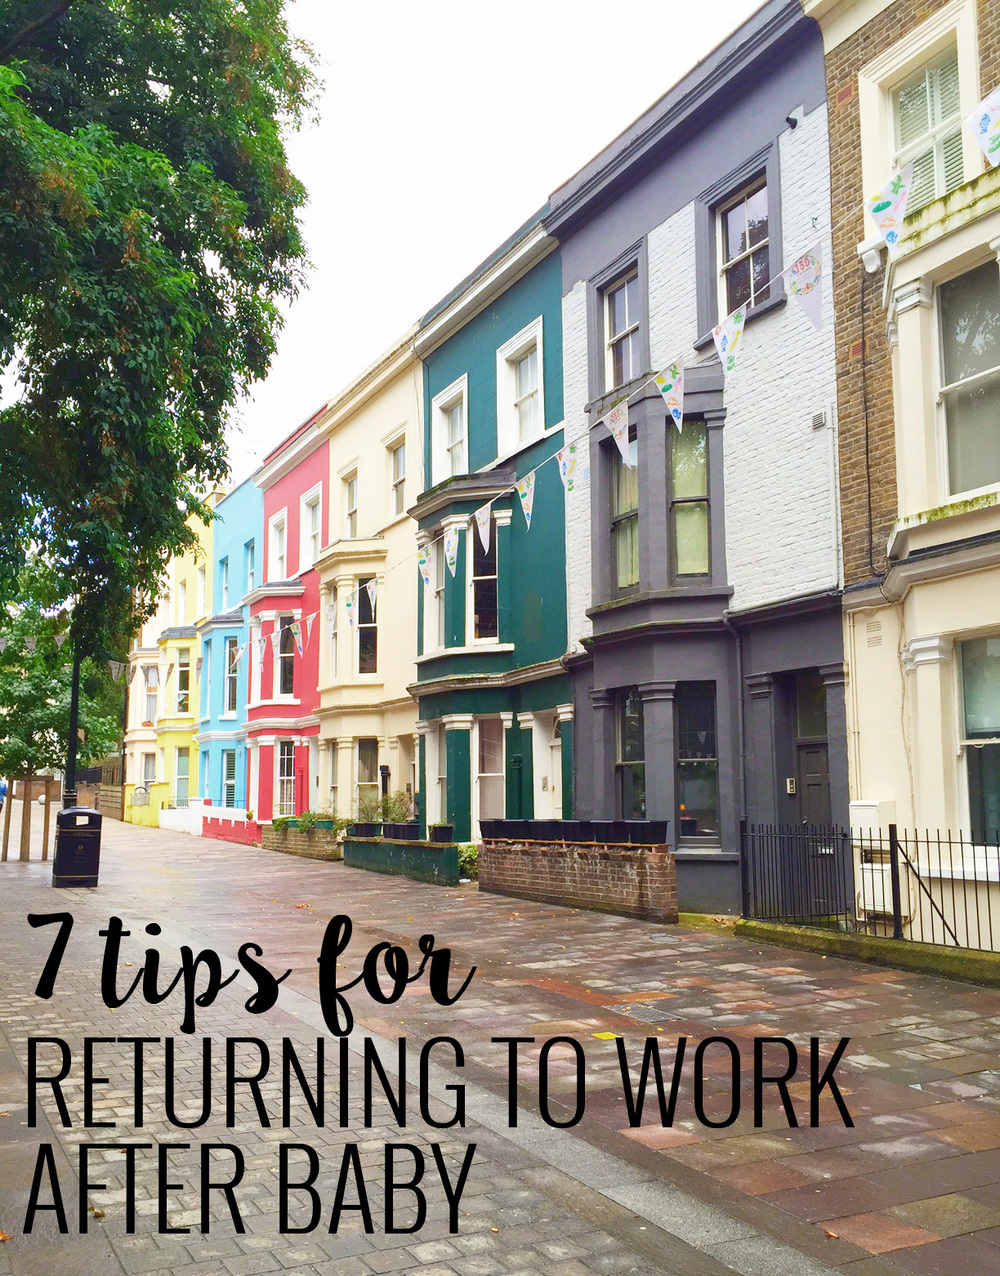 7 Tips For Returning To Work After Baby | Momma Society-The Community of Modern Moms | www.MommaSociety.com